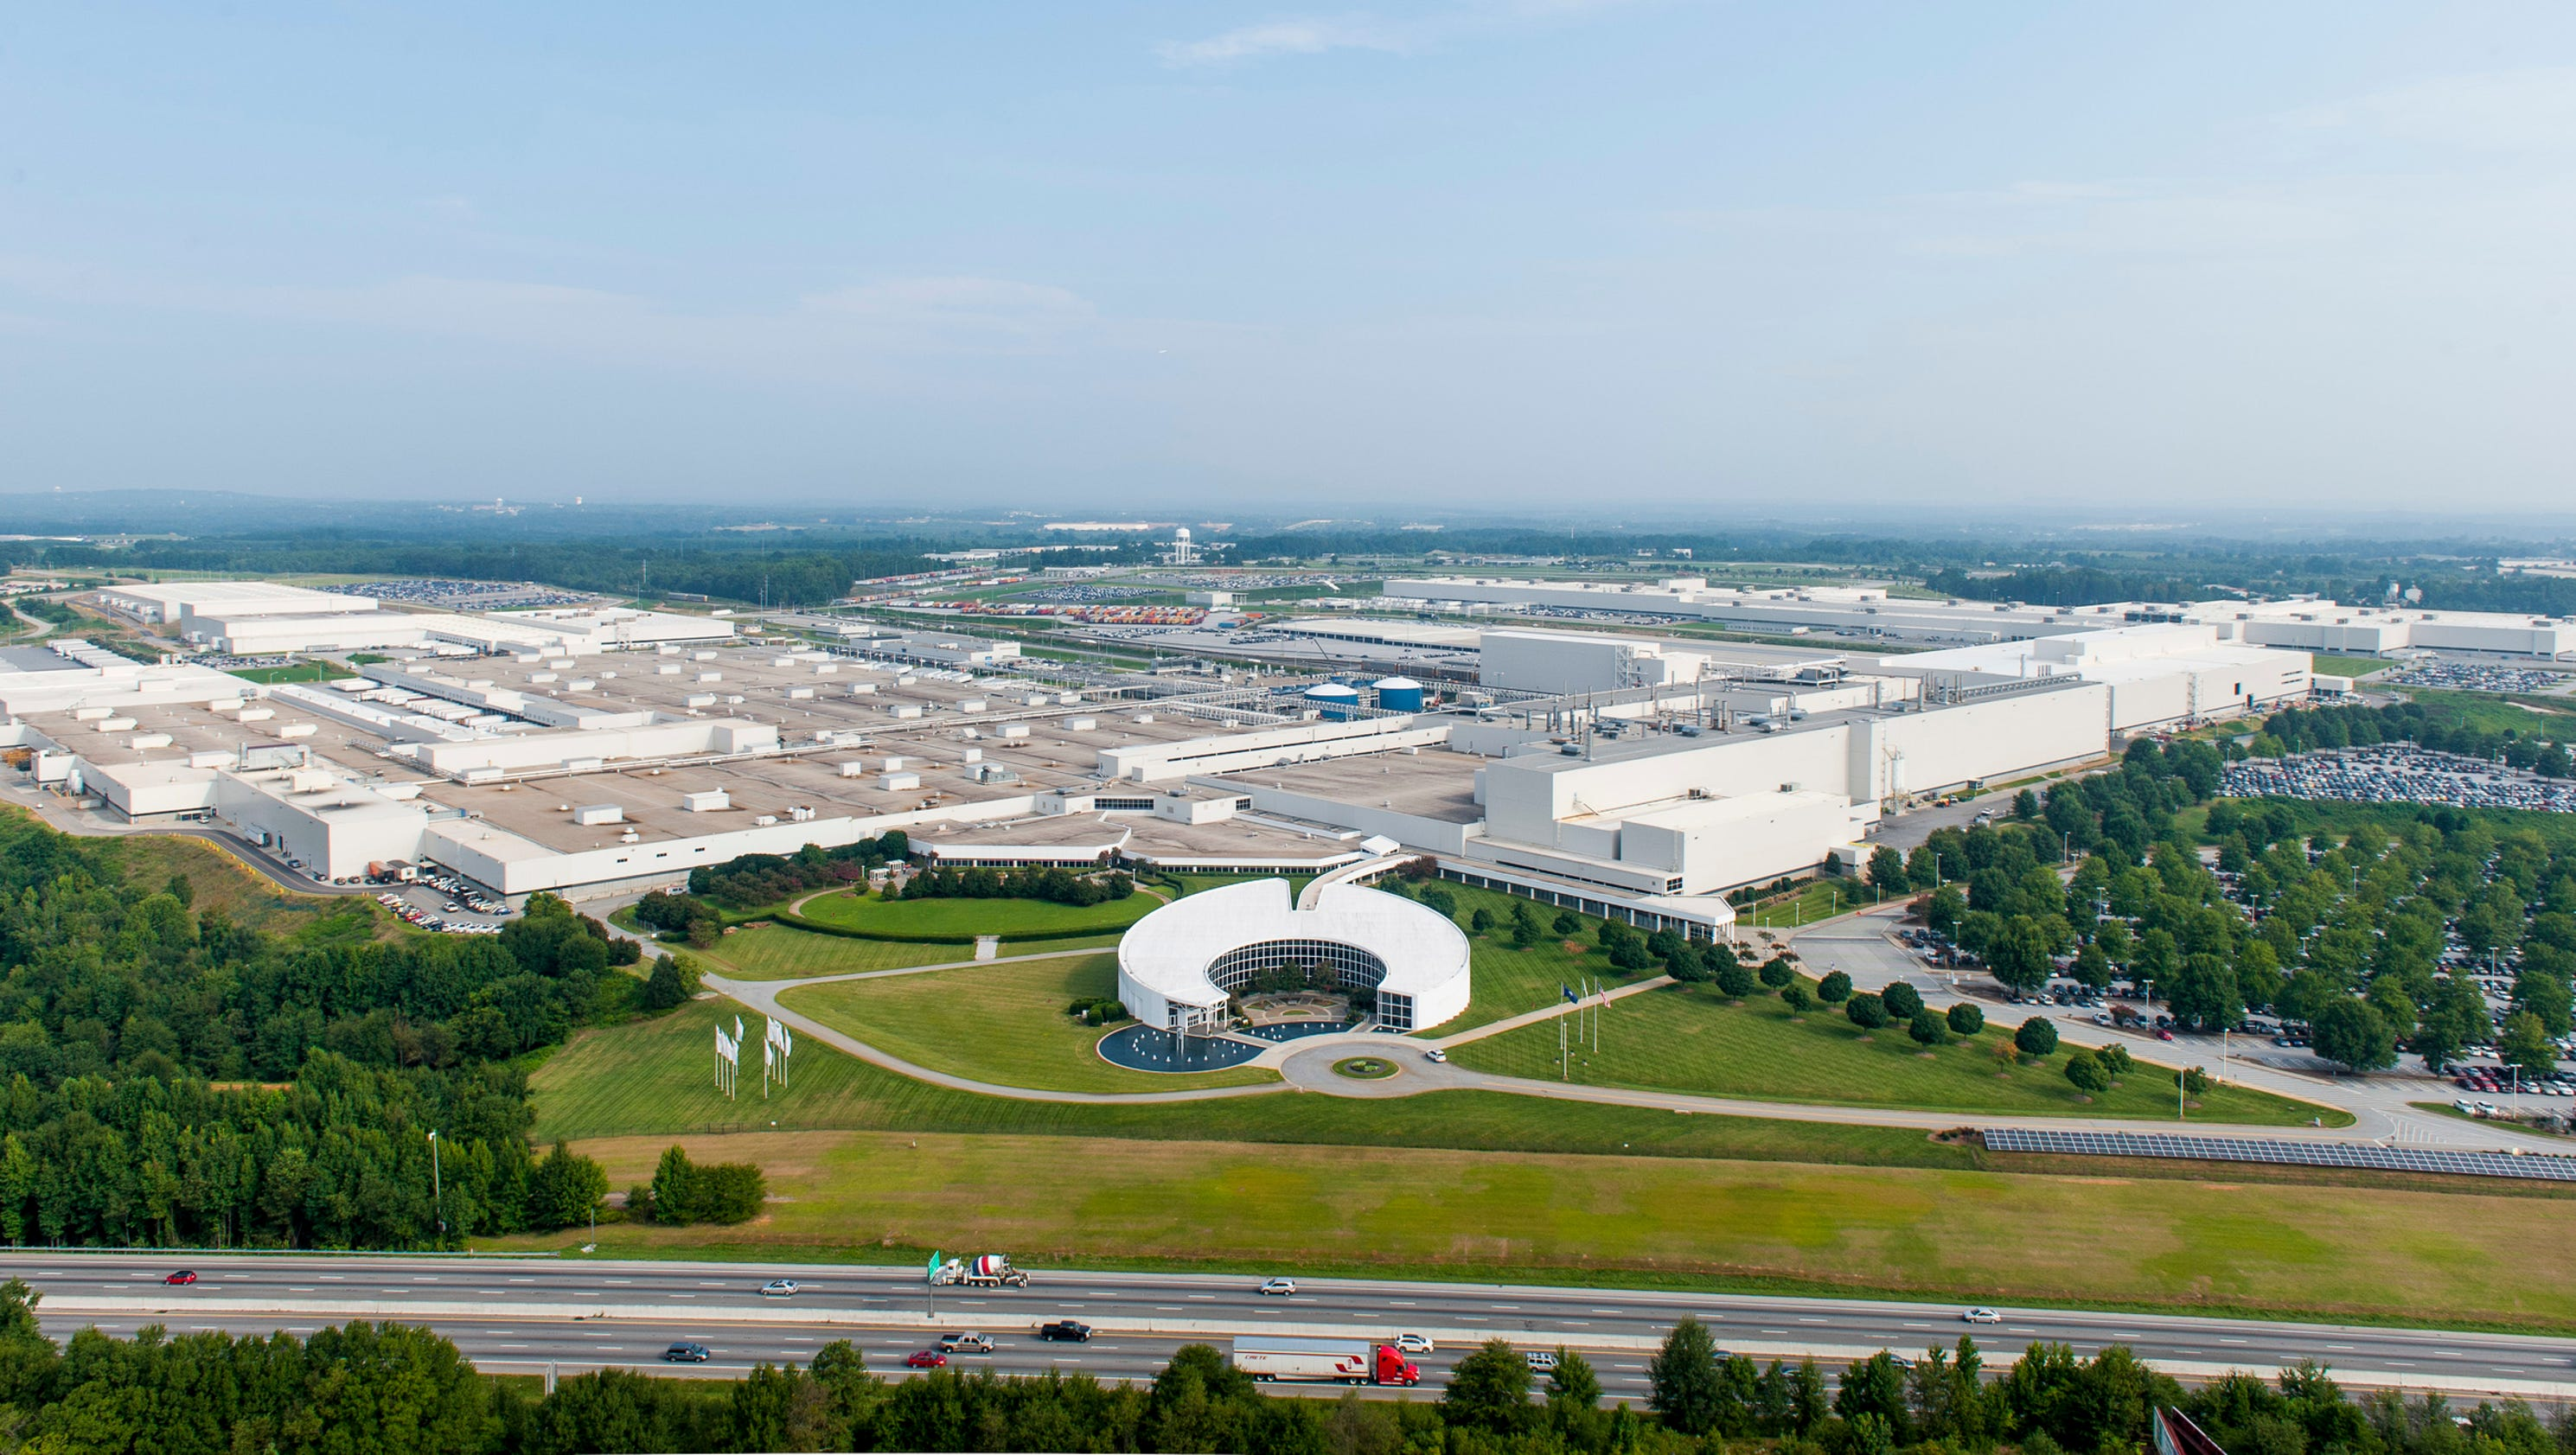 Bmw Plant Death Contract Worker Died In Vehicle Lift Accident